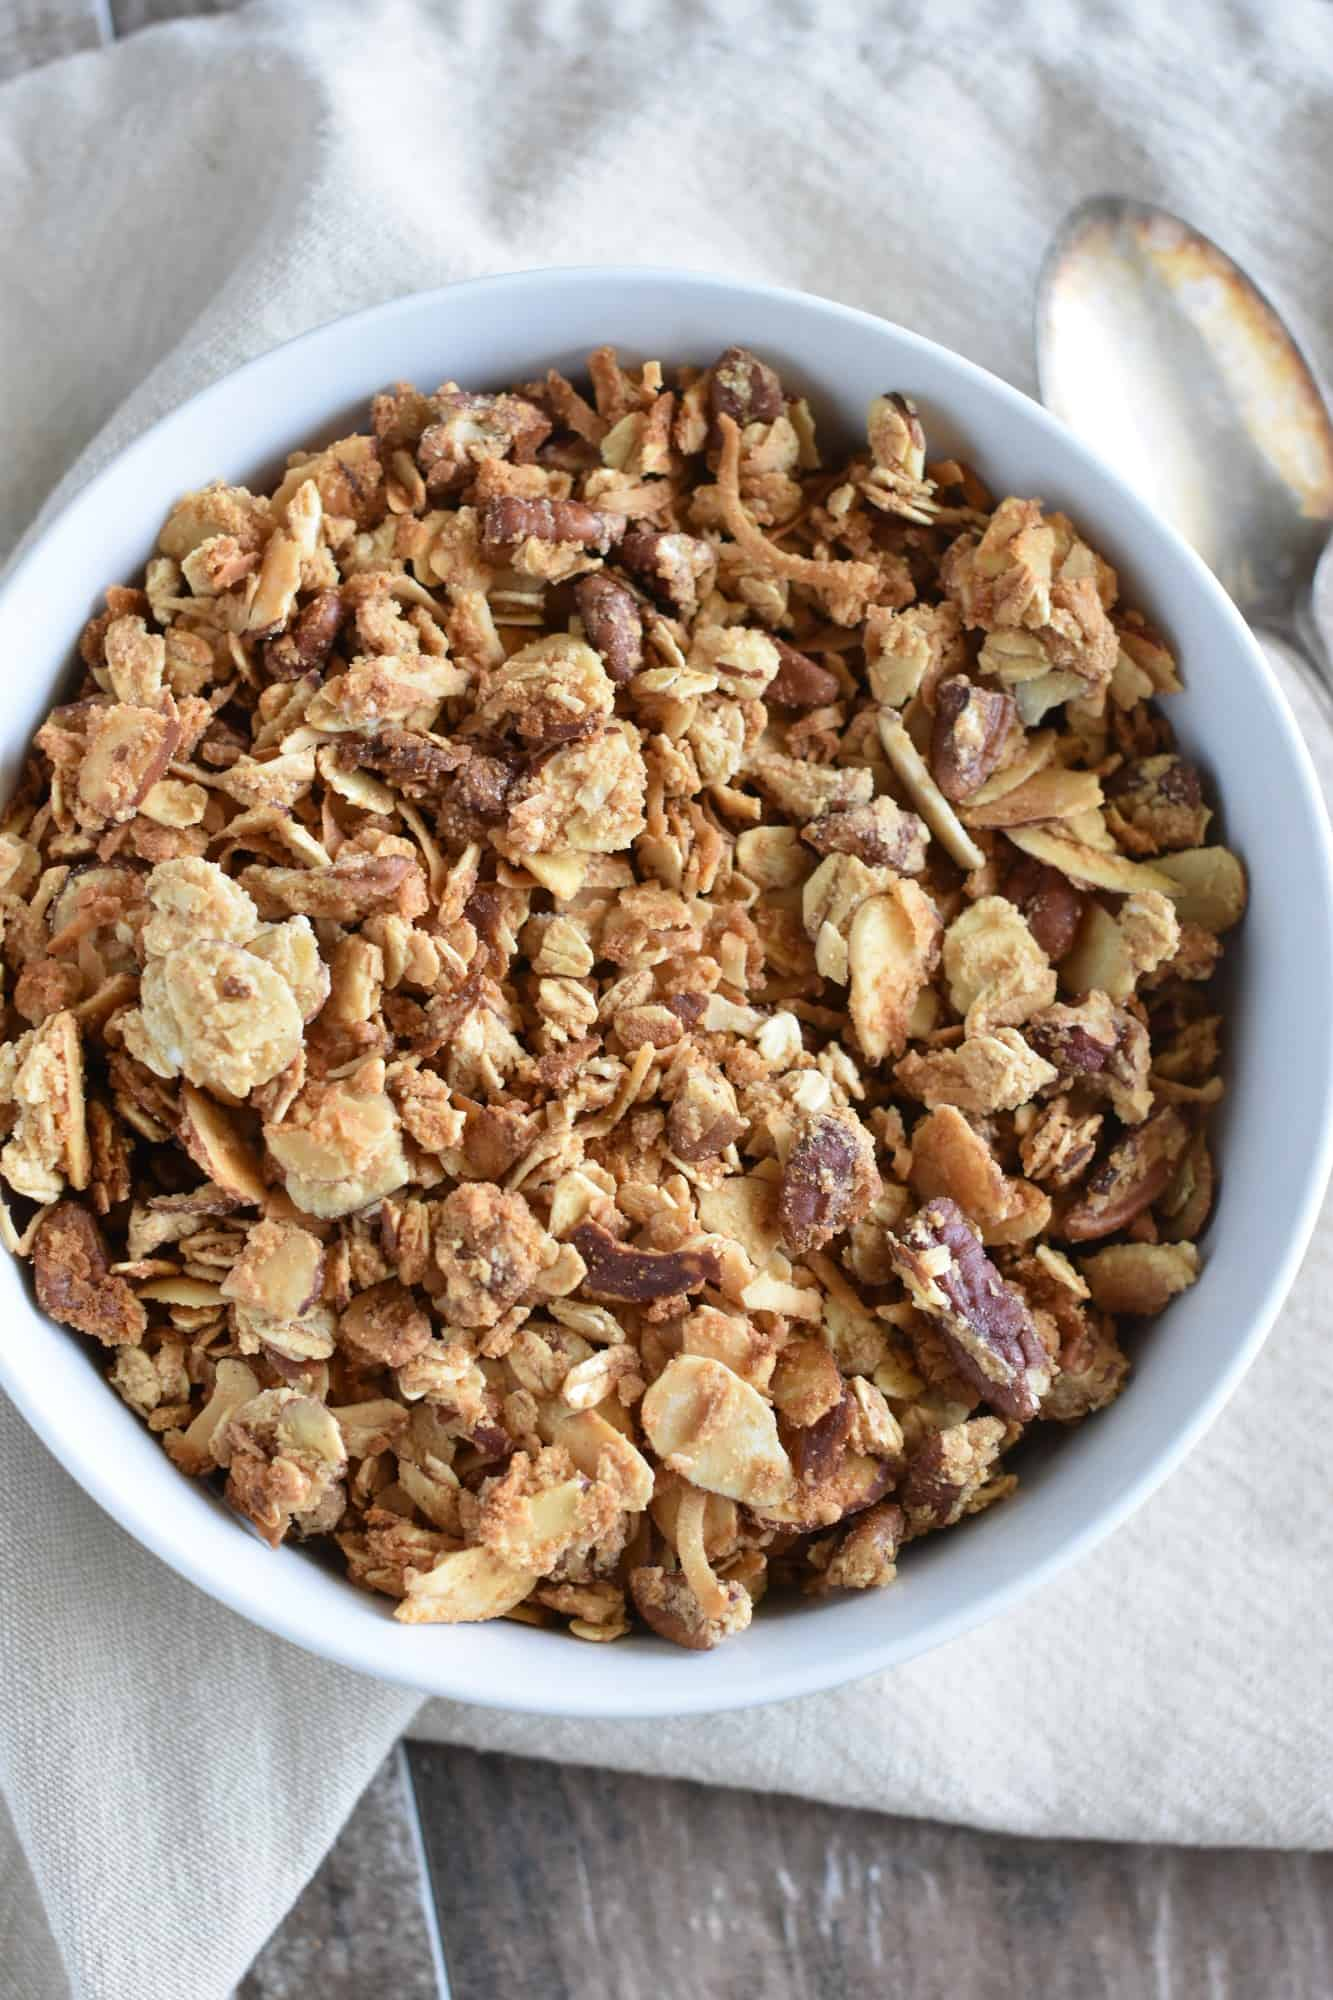 overhead of granola in white bowl with spoon next to it on a kitchen napkin